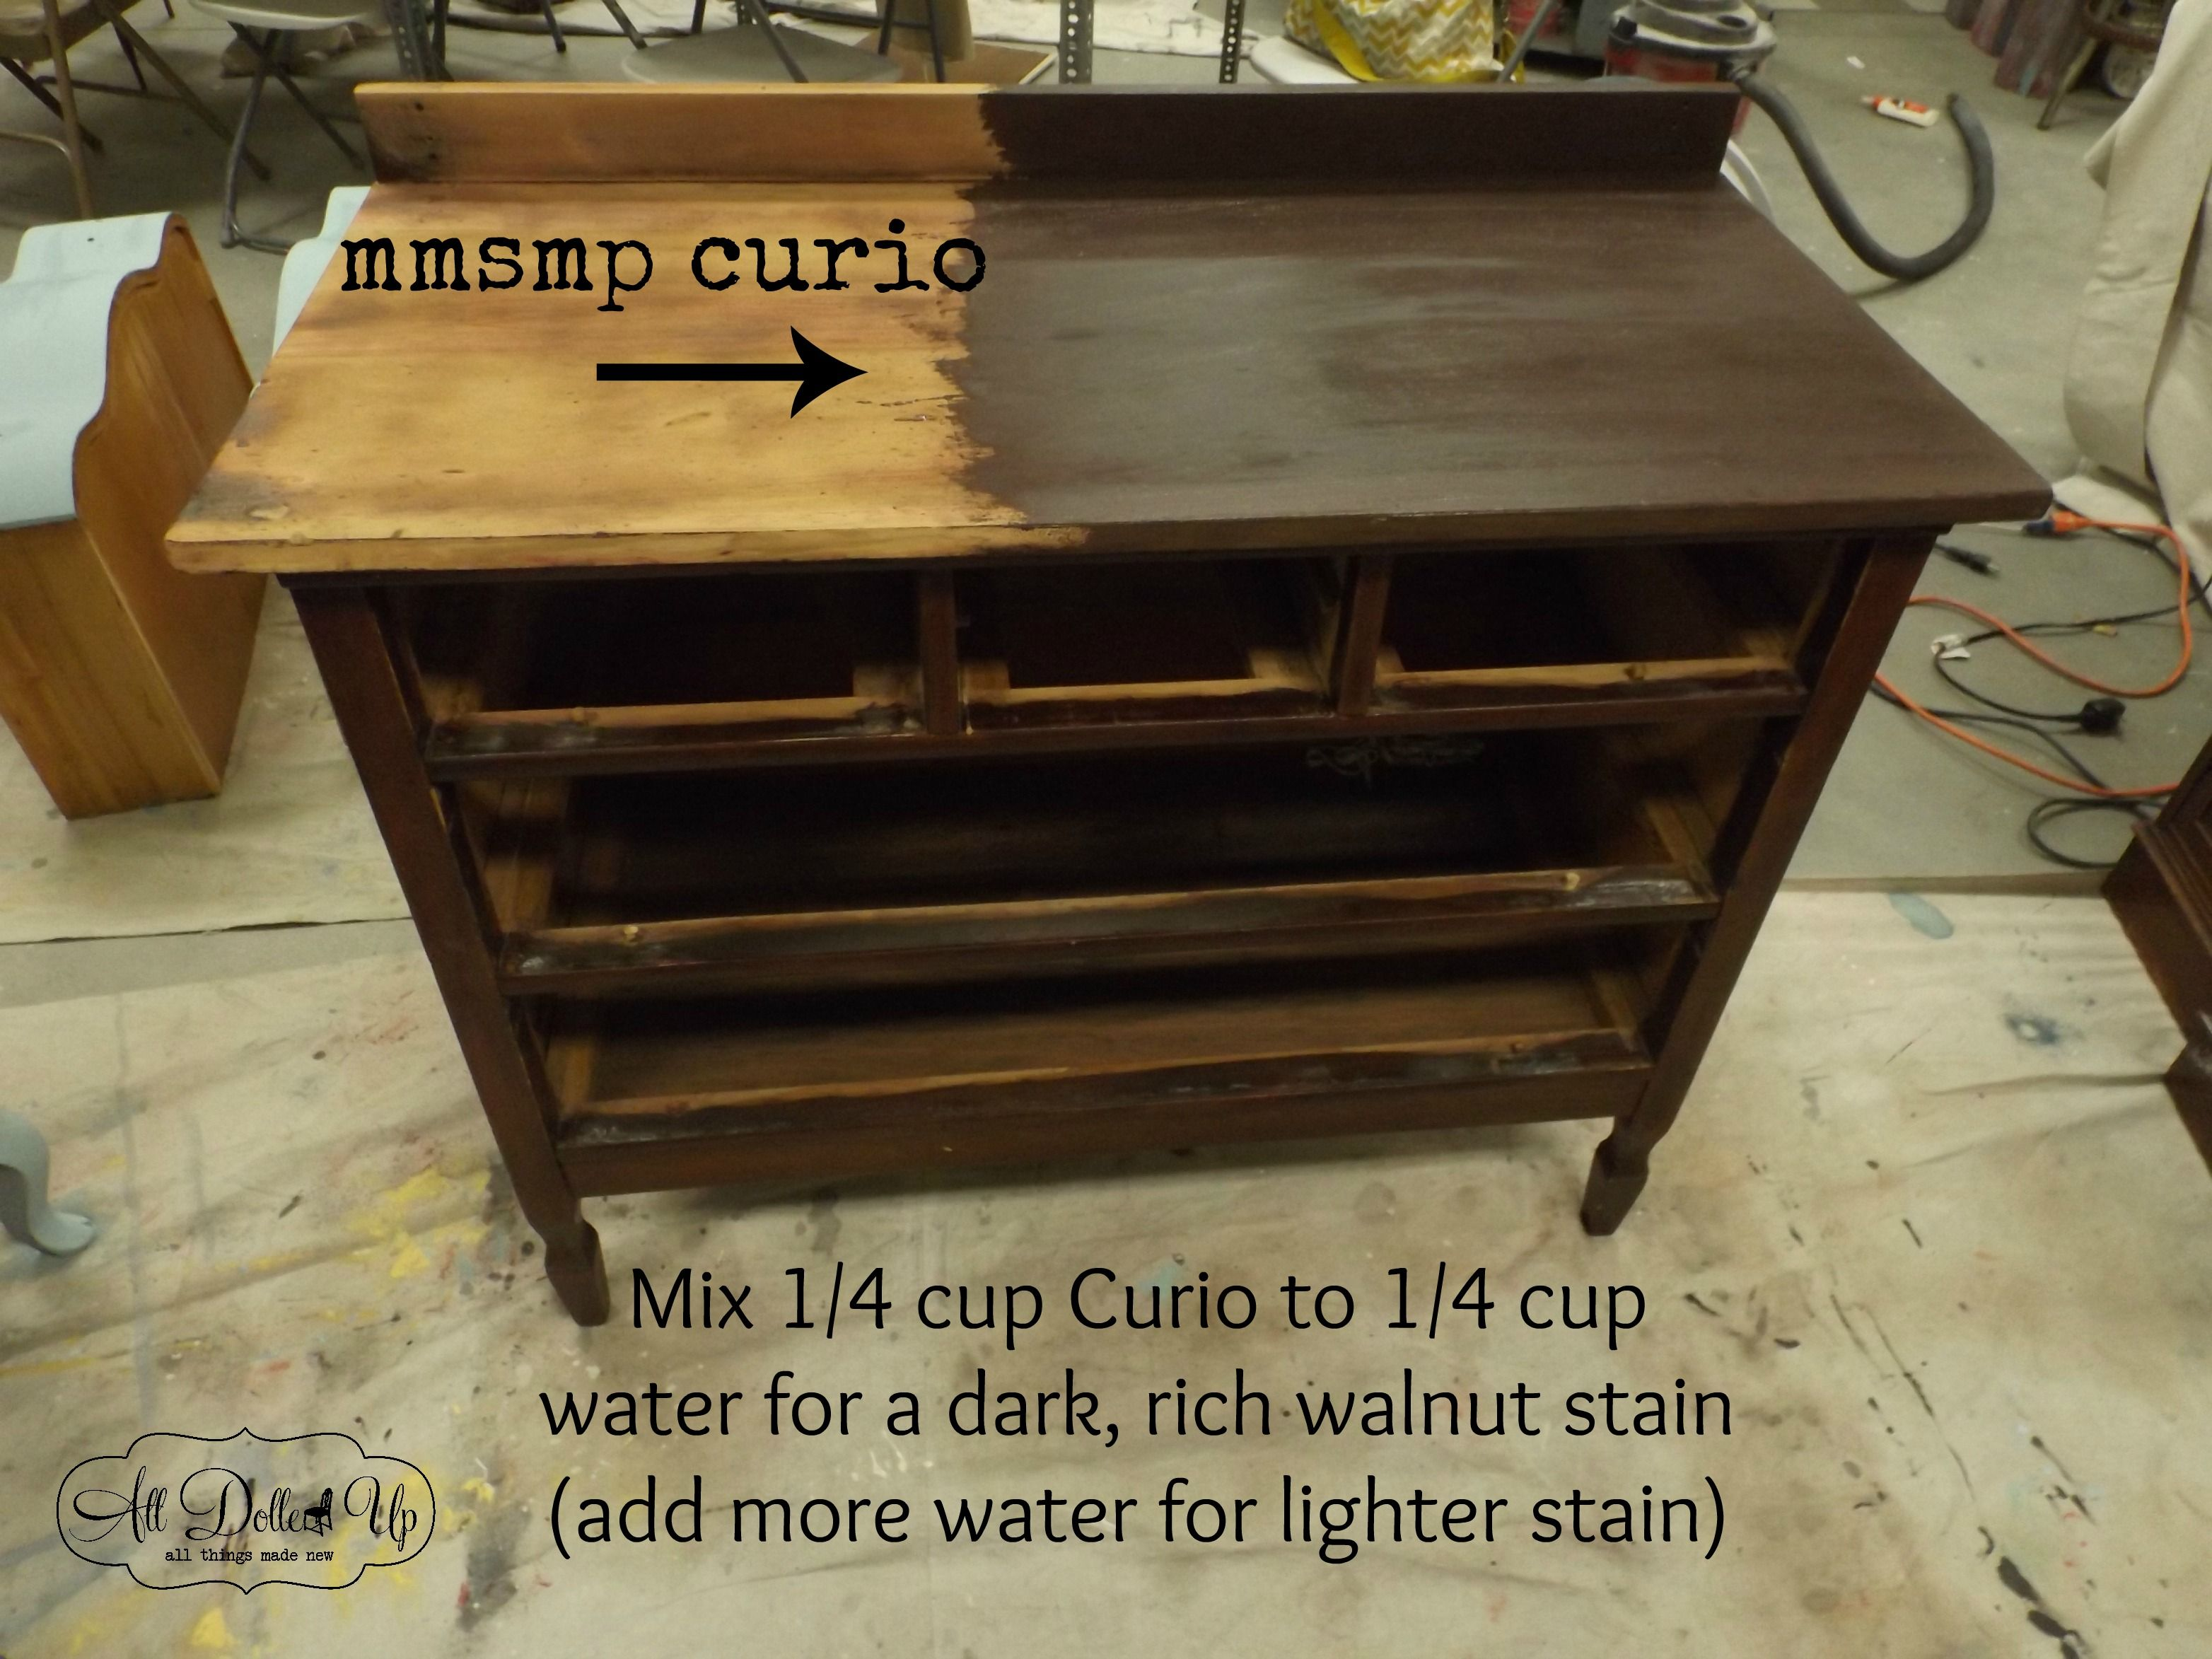 Can i stain over stain - 1000 Images About Curio Milk Paint On Pinterest Ohio Plywood Walls And Miss Mustard Seeds